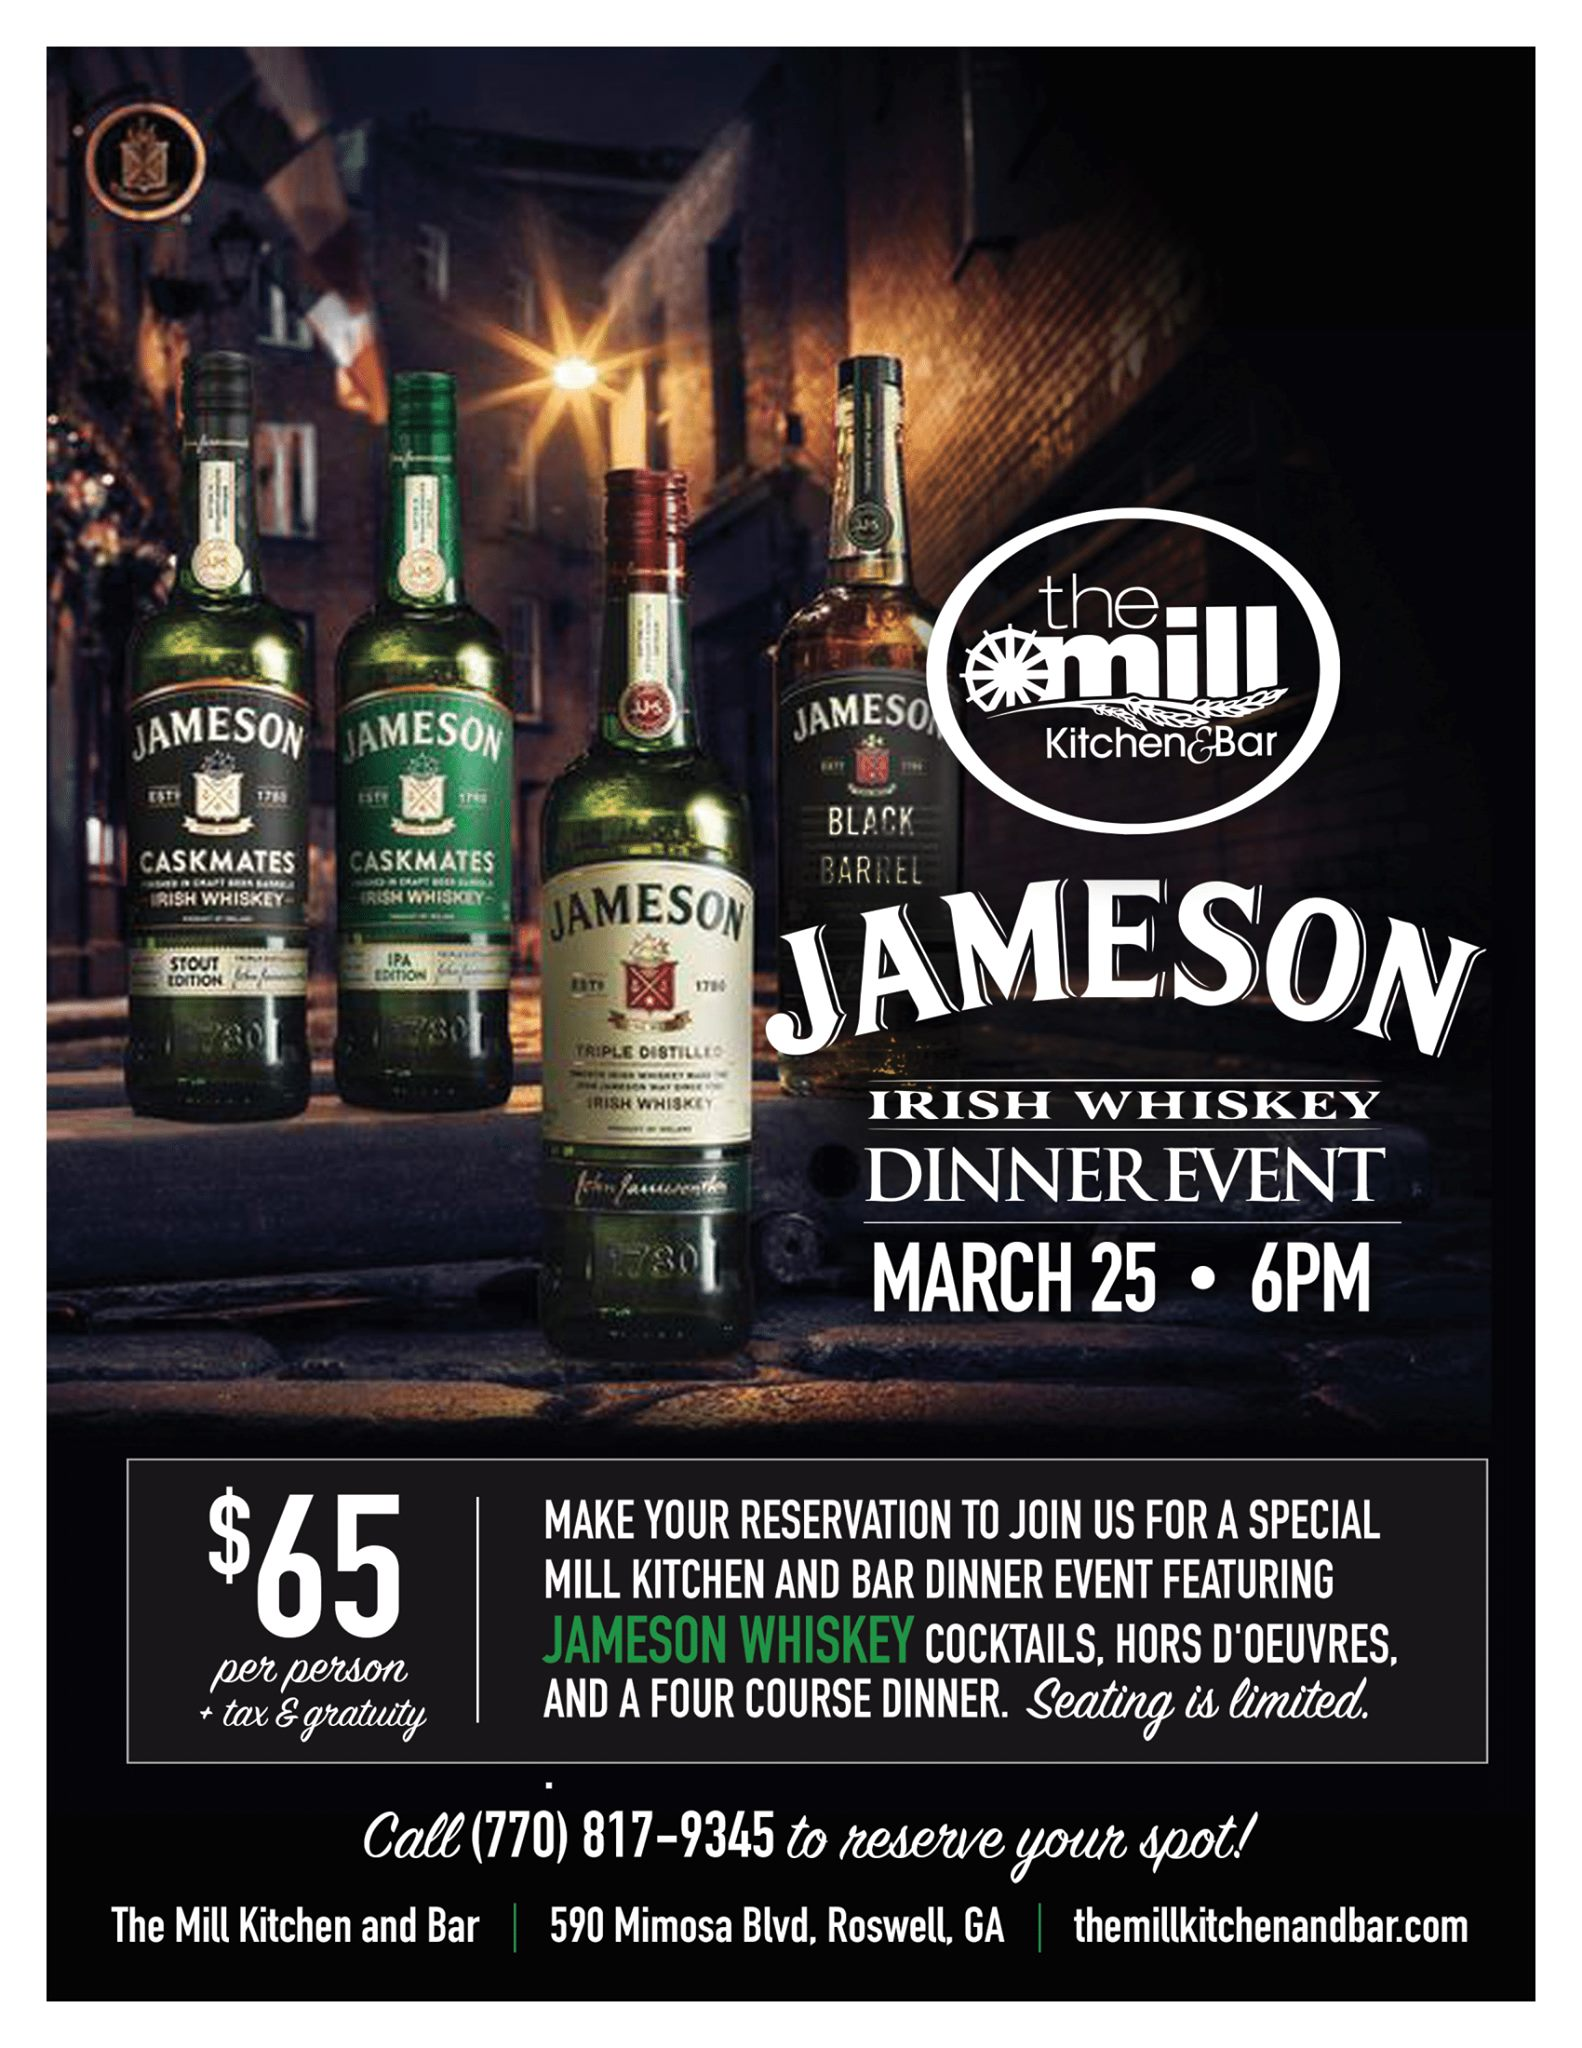 May be an image of drink and text that says 'AMESON 783 AMESON ASKMATES WHISKEY mll JAMESO KitchenEBar ASKMATES SHWHISKEY BLACK MESON JAMESON DISTILLEO IRISH WHISKEY DINNEREVENT MARCH 25 6PM 65 per person tax gratuity MAKE YOUR RESERVATION TO JOIN US FOR A SPECIAL MILL KITCHEN AND BAR DINNER EVENT FEATURING JAMESON WHISKEY COCKTAILS, HORS 'OEUVRES, AND FOUR COURSE DINNER. Seating is limited. Call The Mill Kitchen and Bar 817-9345 reserve your spot! 590 Mimosa Blvd, Roswell, GA themillkitchenandbar.com'